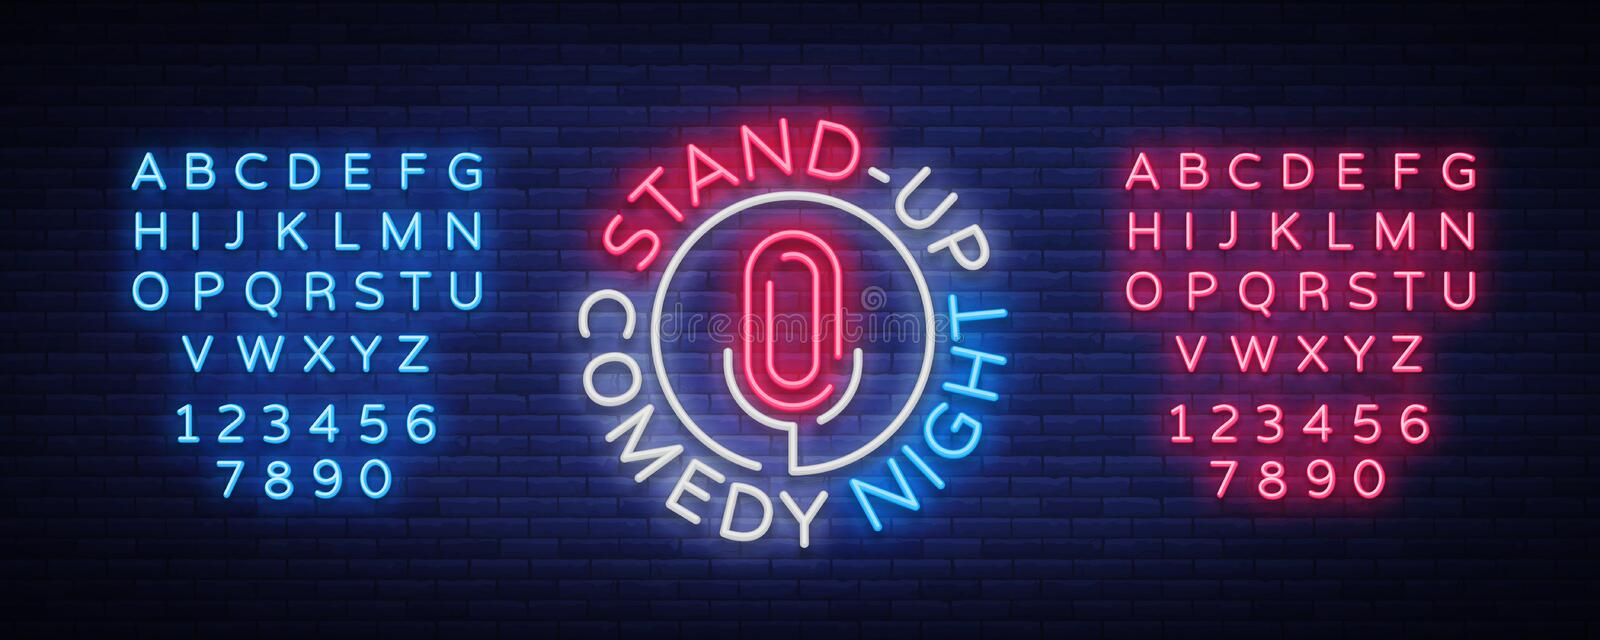 Stand Up Comedy Show is a neon sign. Neon logo, bright luminous banner, neon poster, bright night-time advertisement. Stand up show. Invitation to the Comedy royalty free illustration